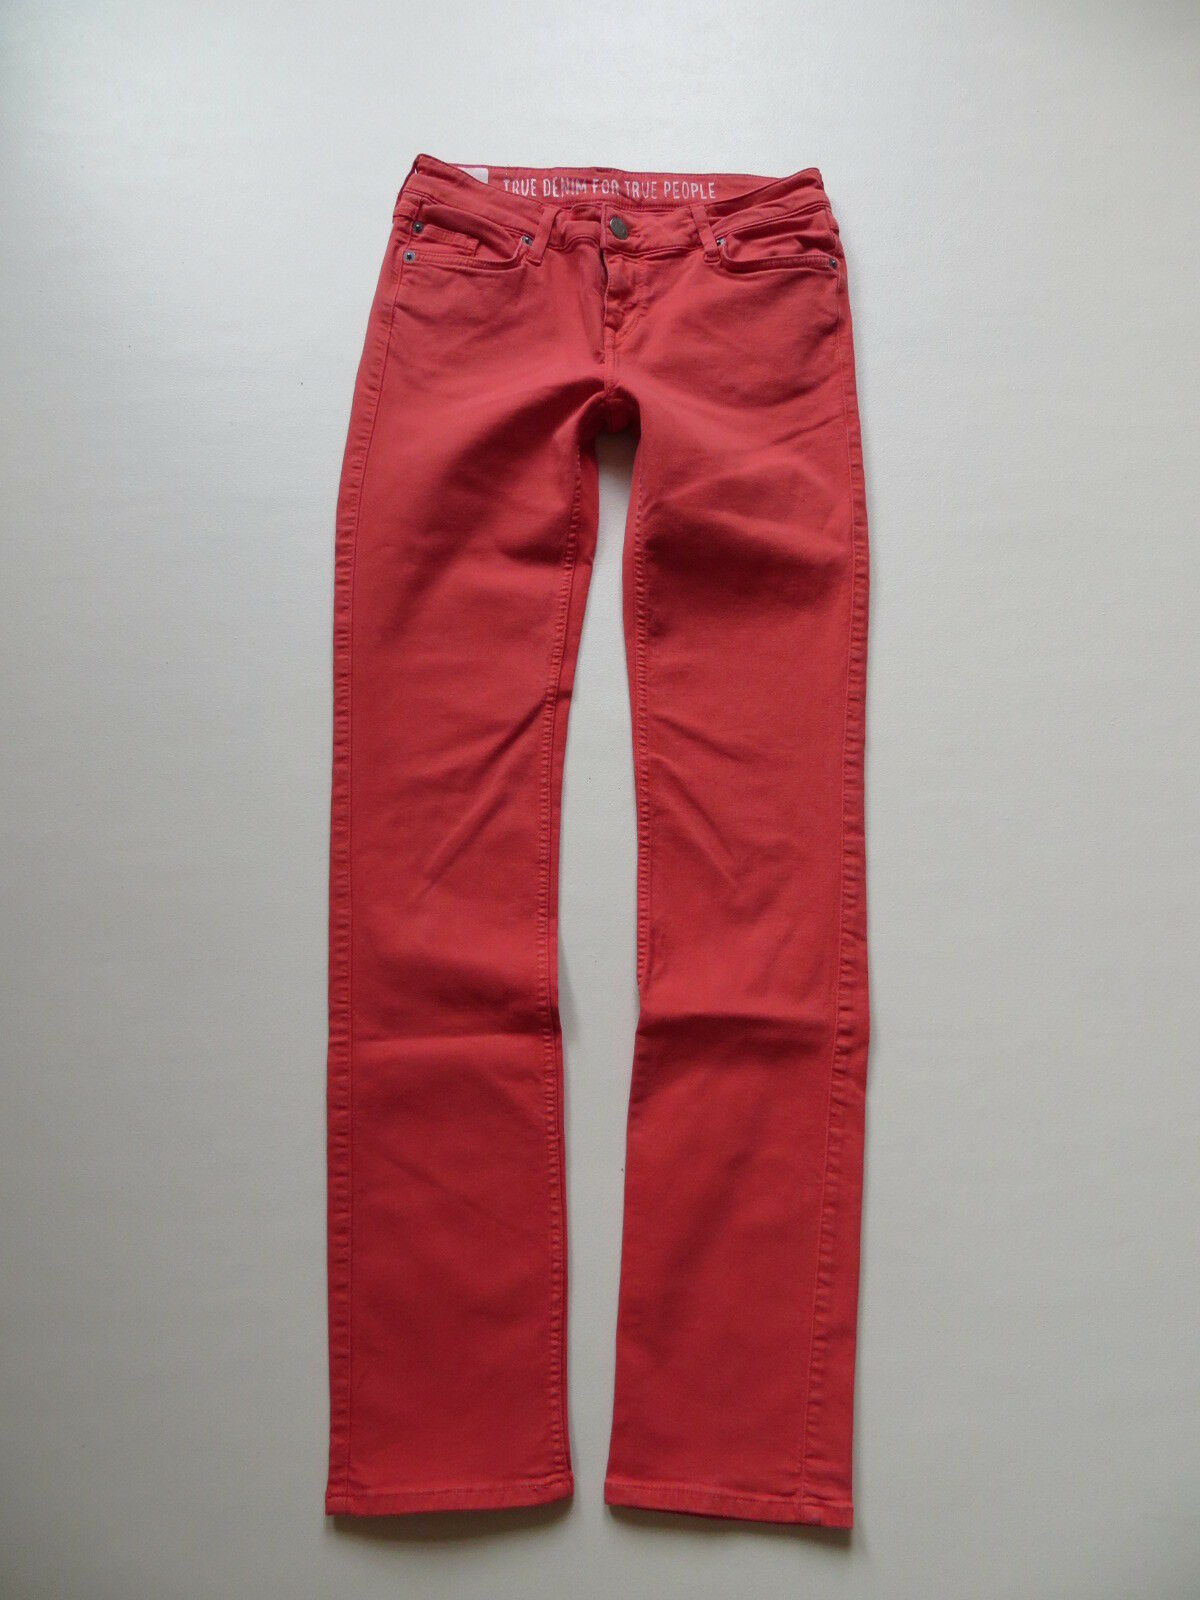 Mustang JASMIN Damen Jeans Hose W 27  L 32 Rot   slim fit Stretch Denim TOP